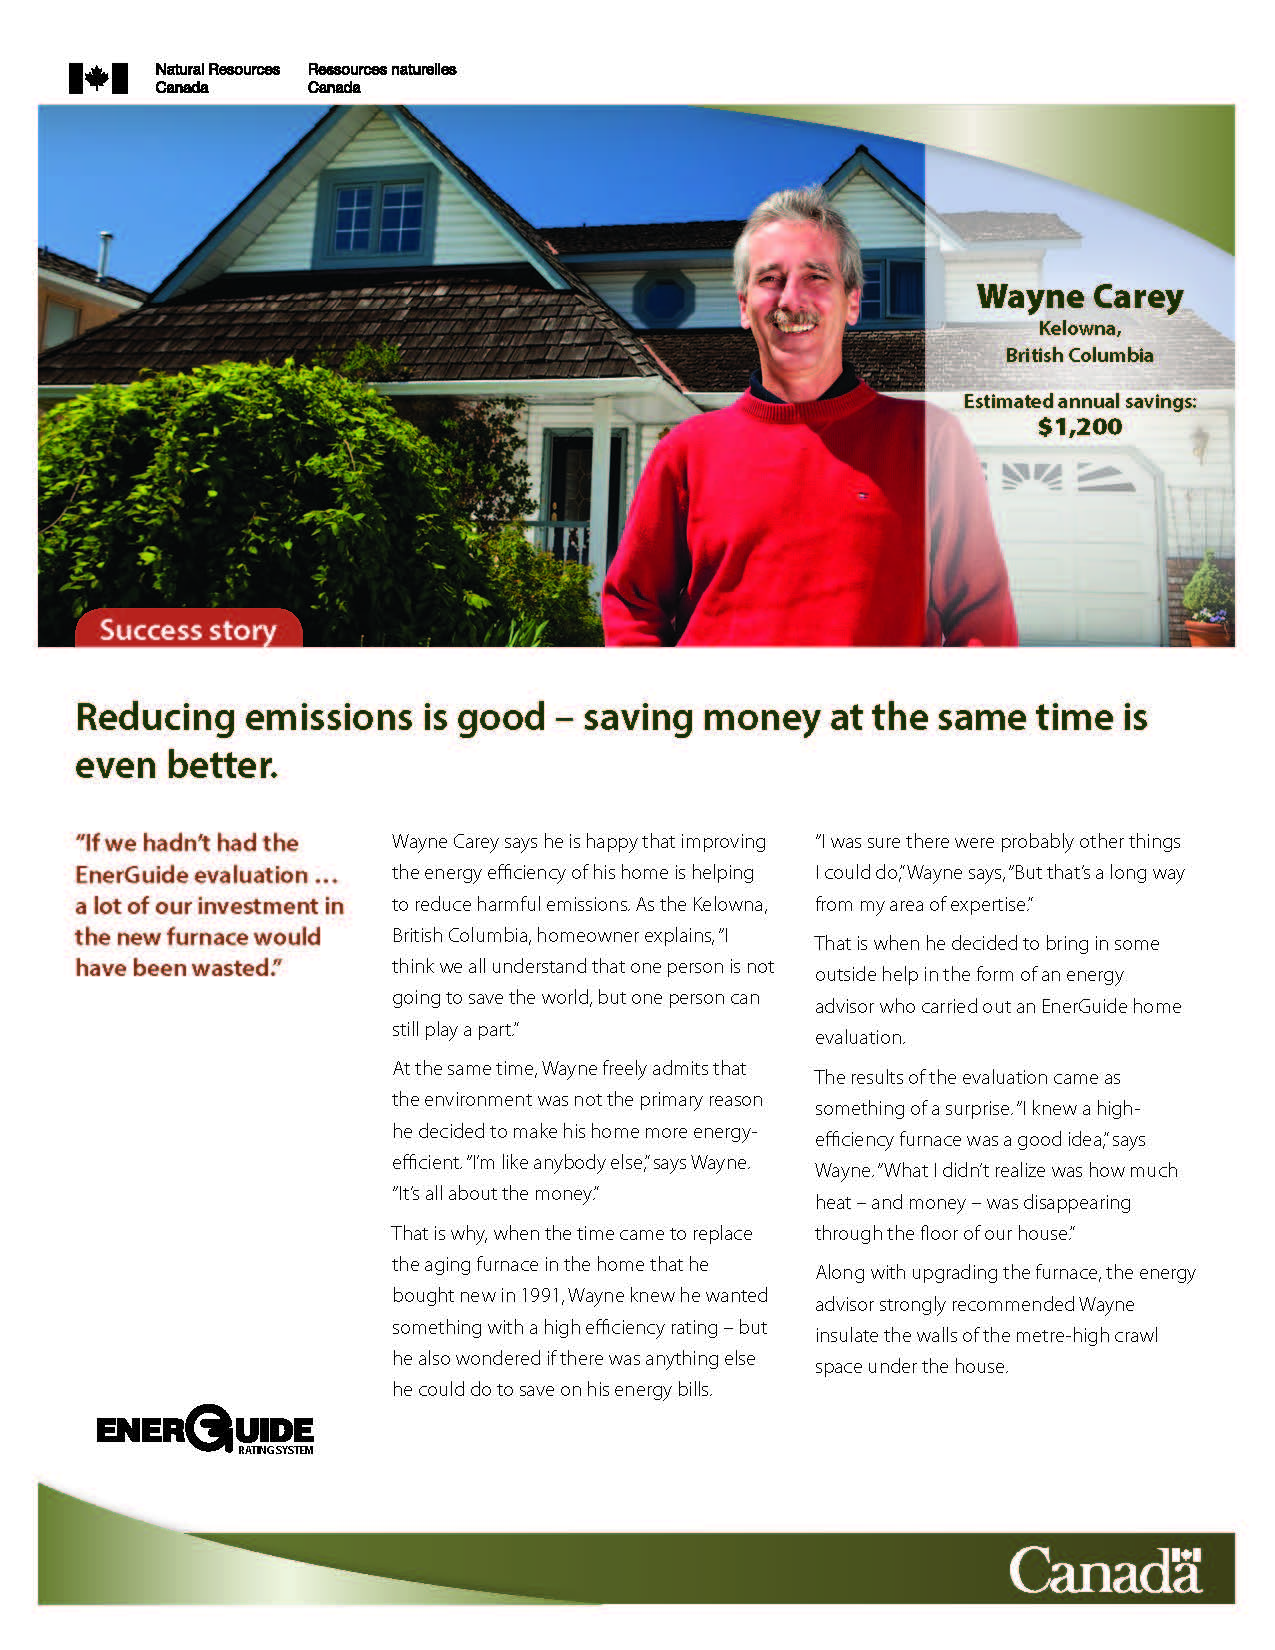 Reducing emissions is good – saving money at the same time is even better.  Kalowna, BC